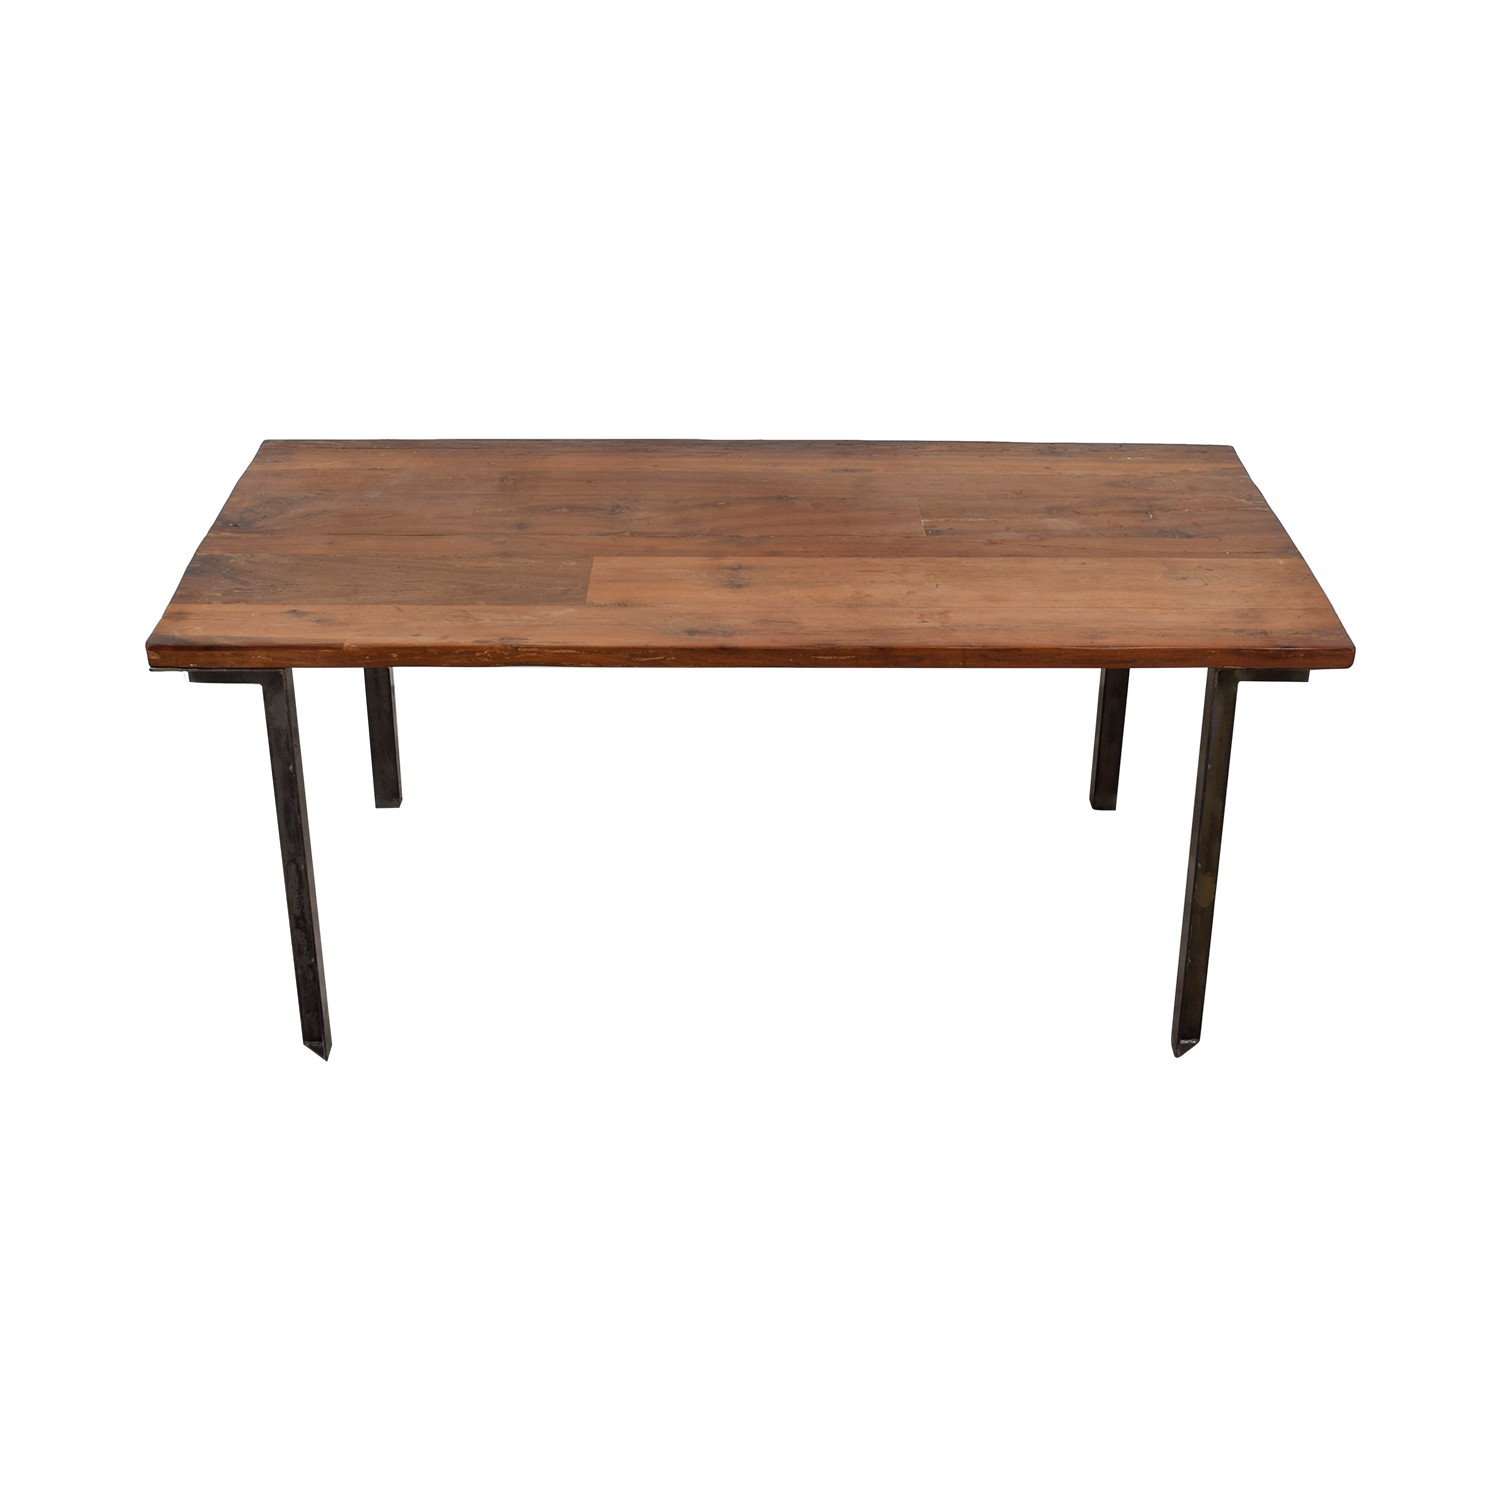 West Elm West Elm Wood and Steel Table nyc